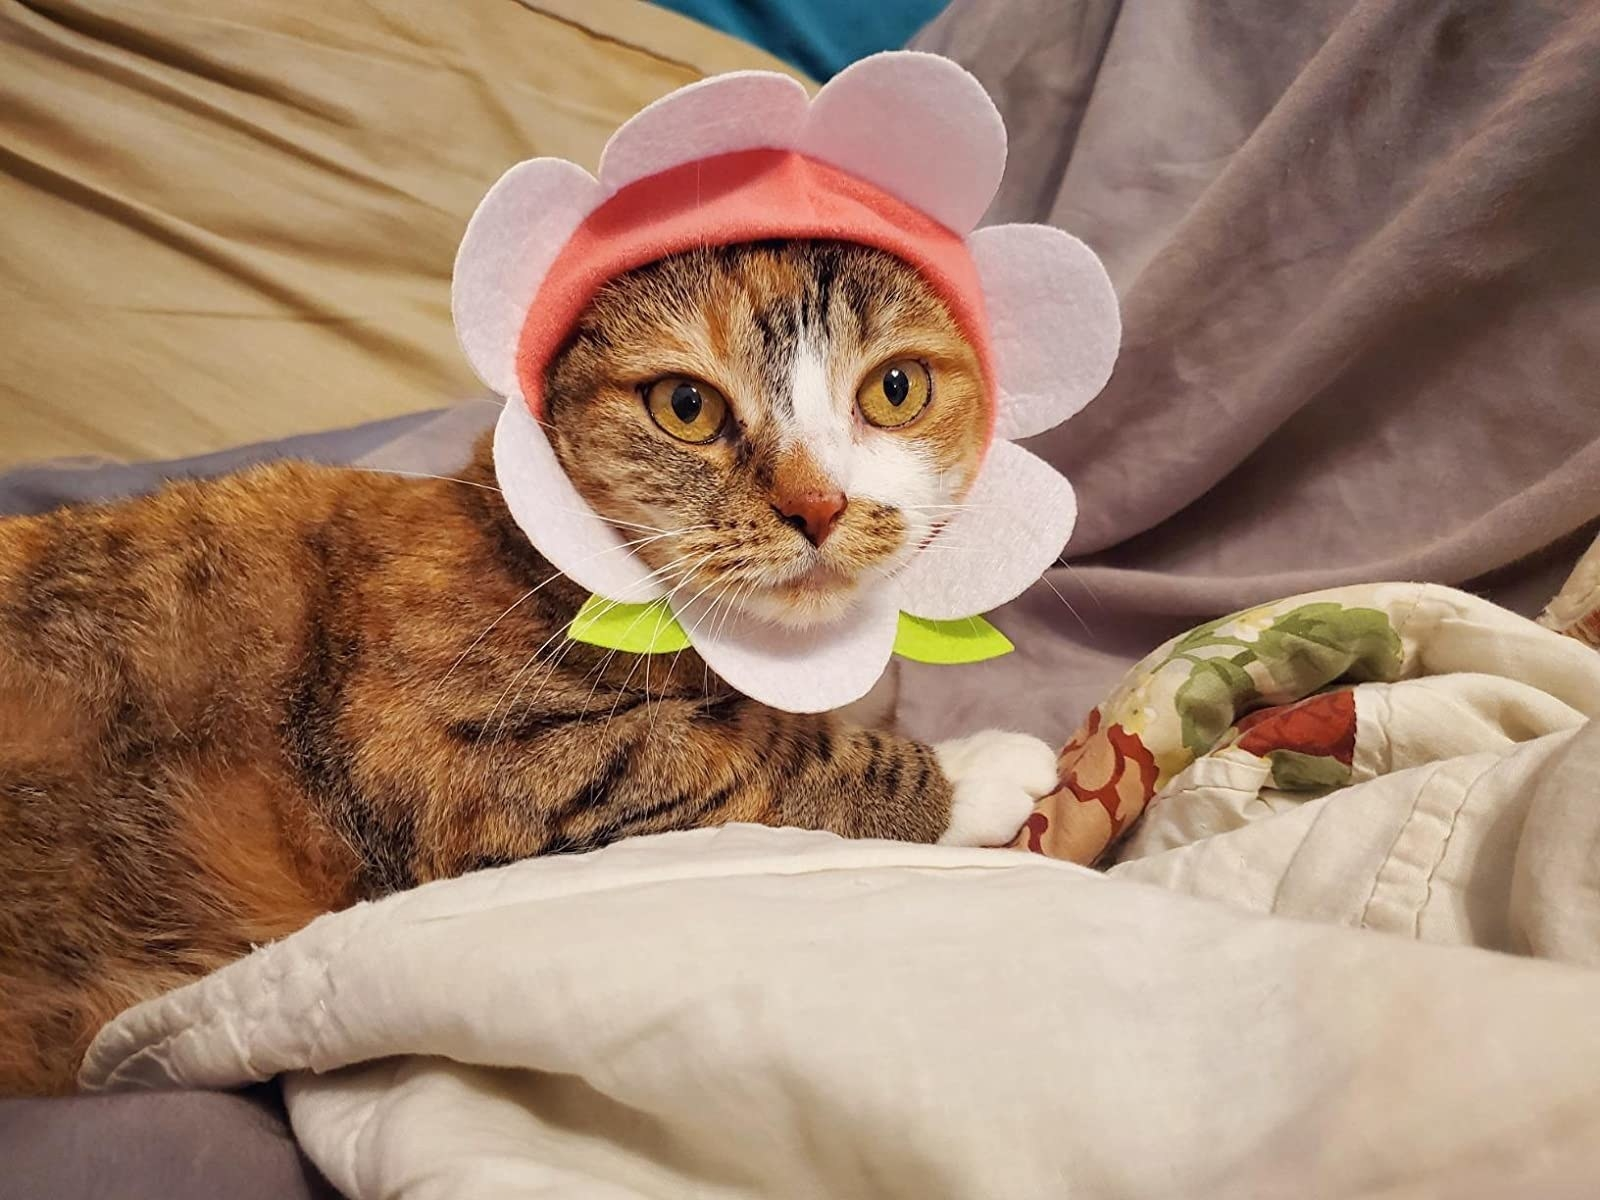 a cat wearing the flower shaped cap